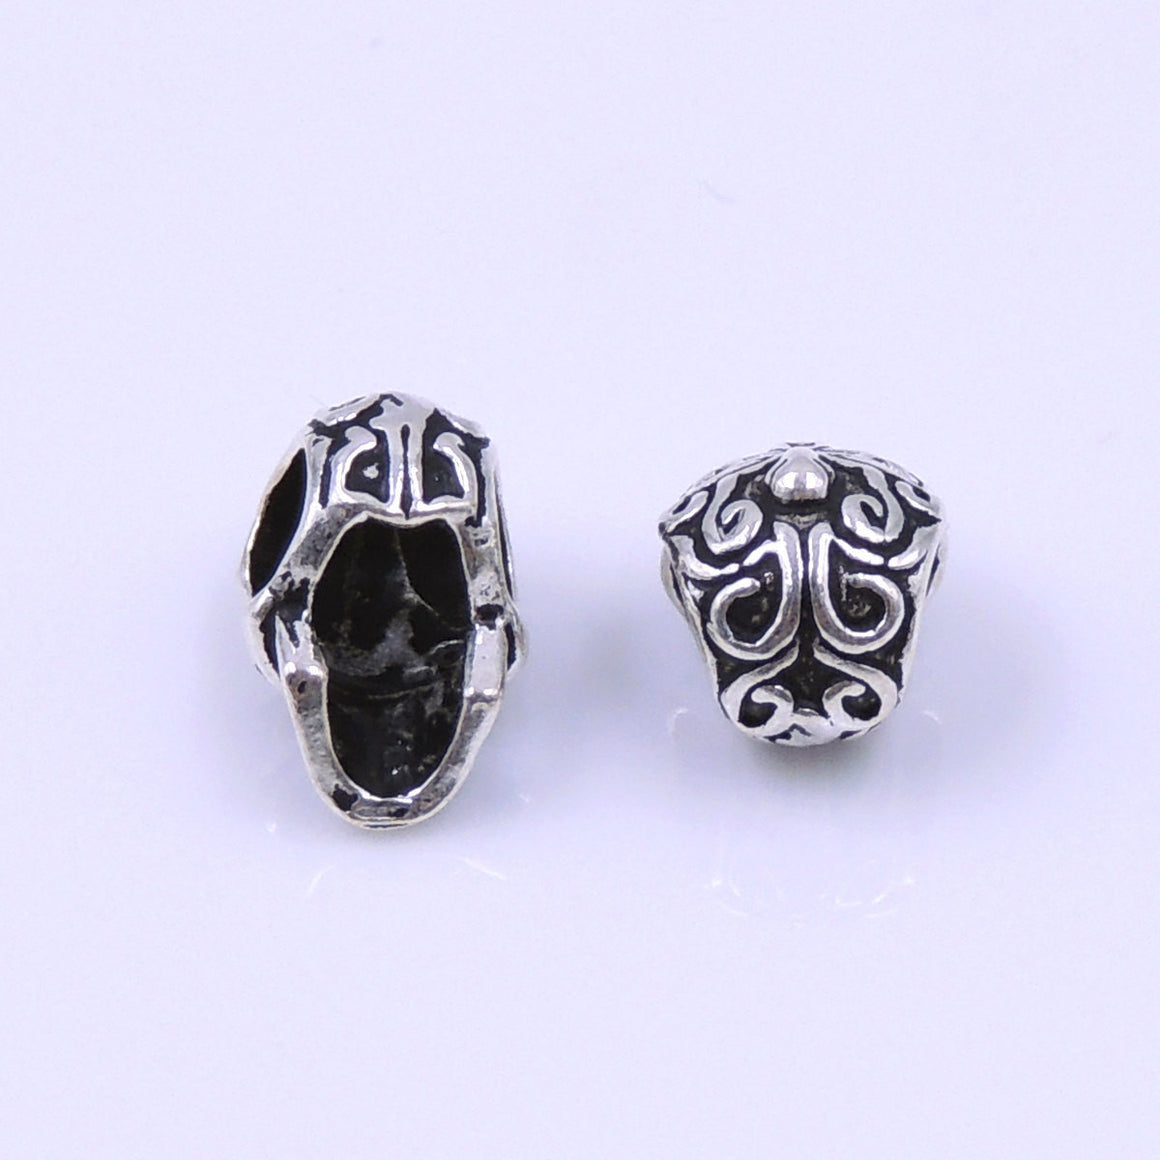 4 PCS Day of the Dead Inspired Tribute Skulls - S925 Sterling Silver WSP211X4